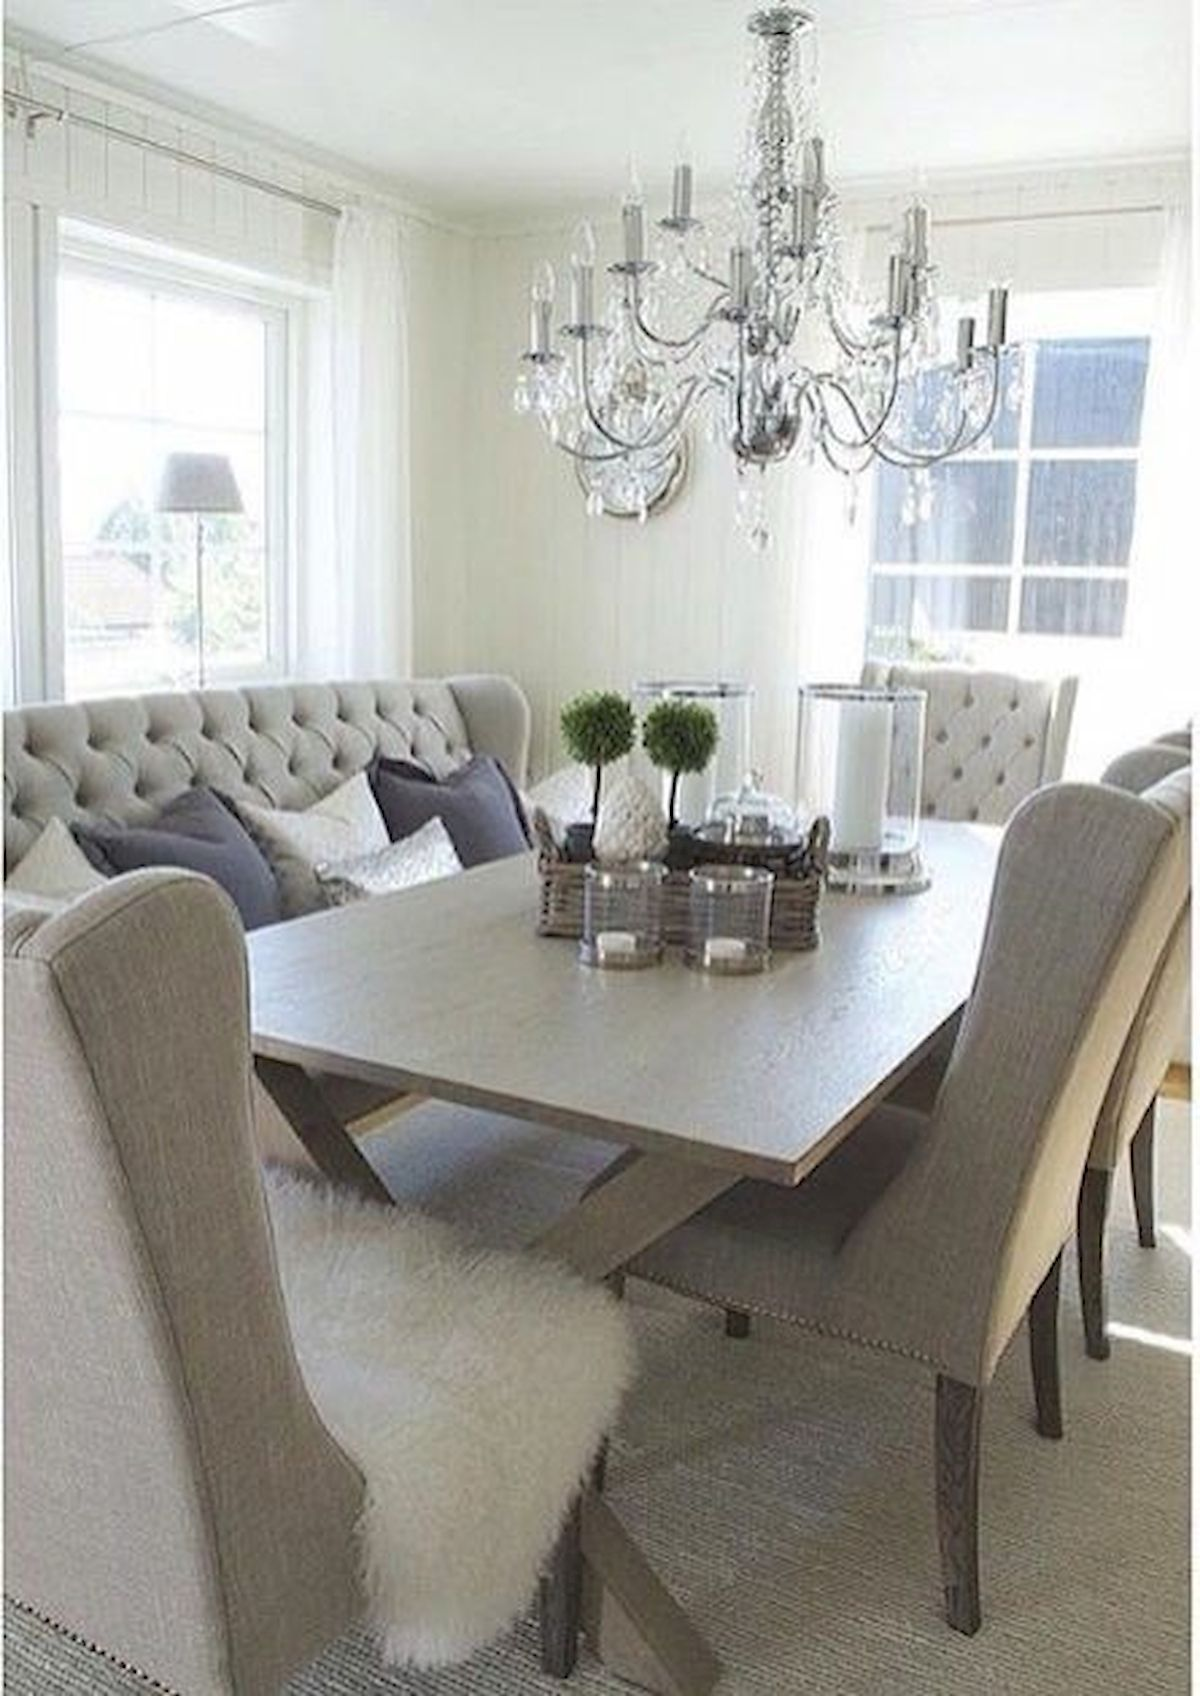 50 Gorgeous Dinning Room Design and Decor Ideas (11)